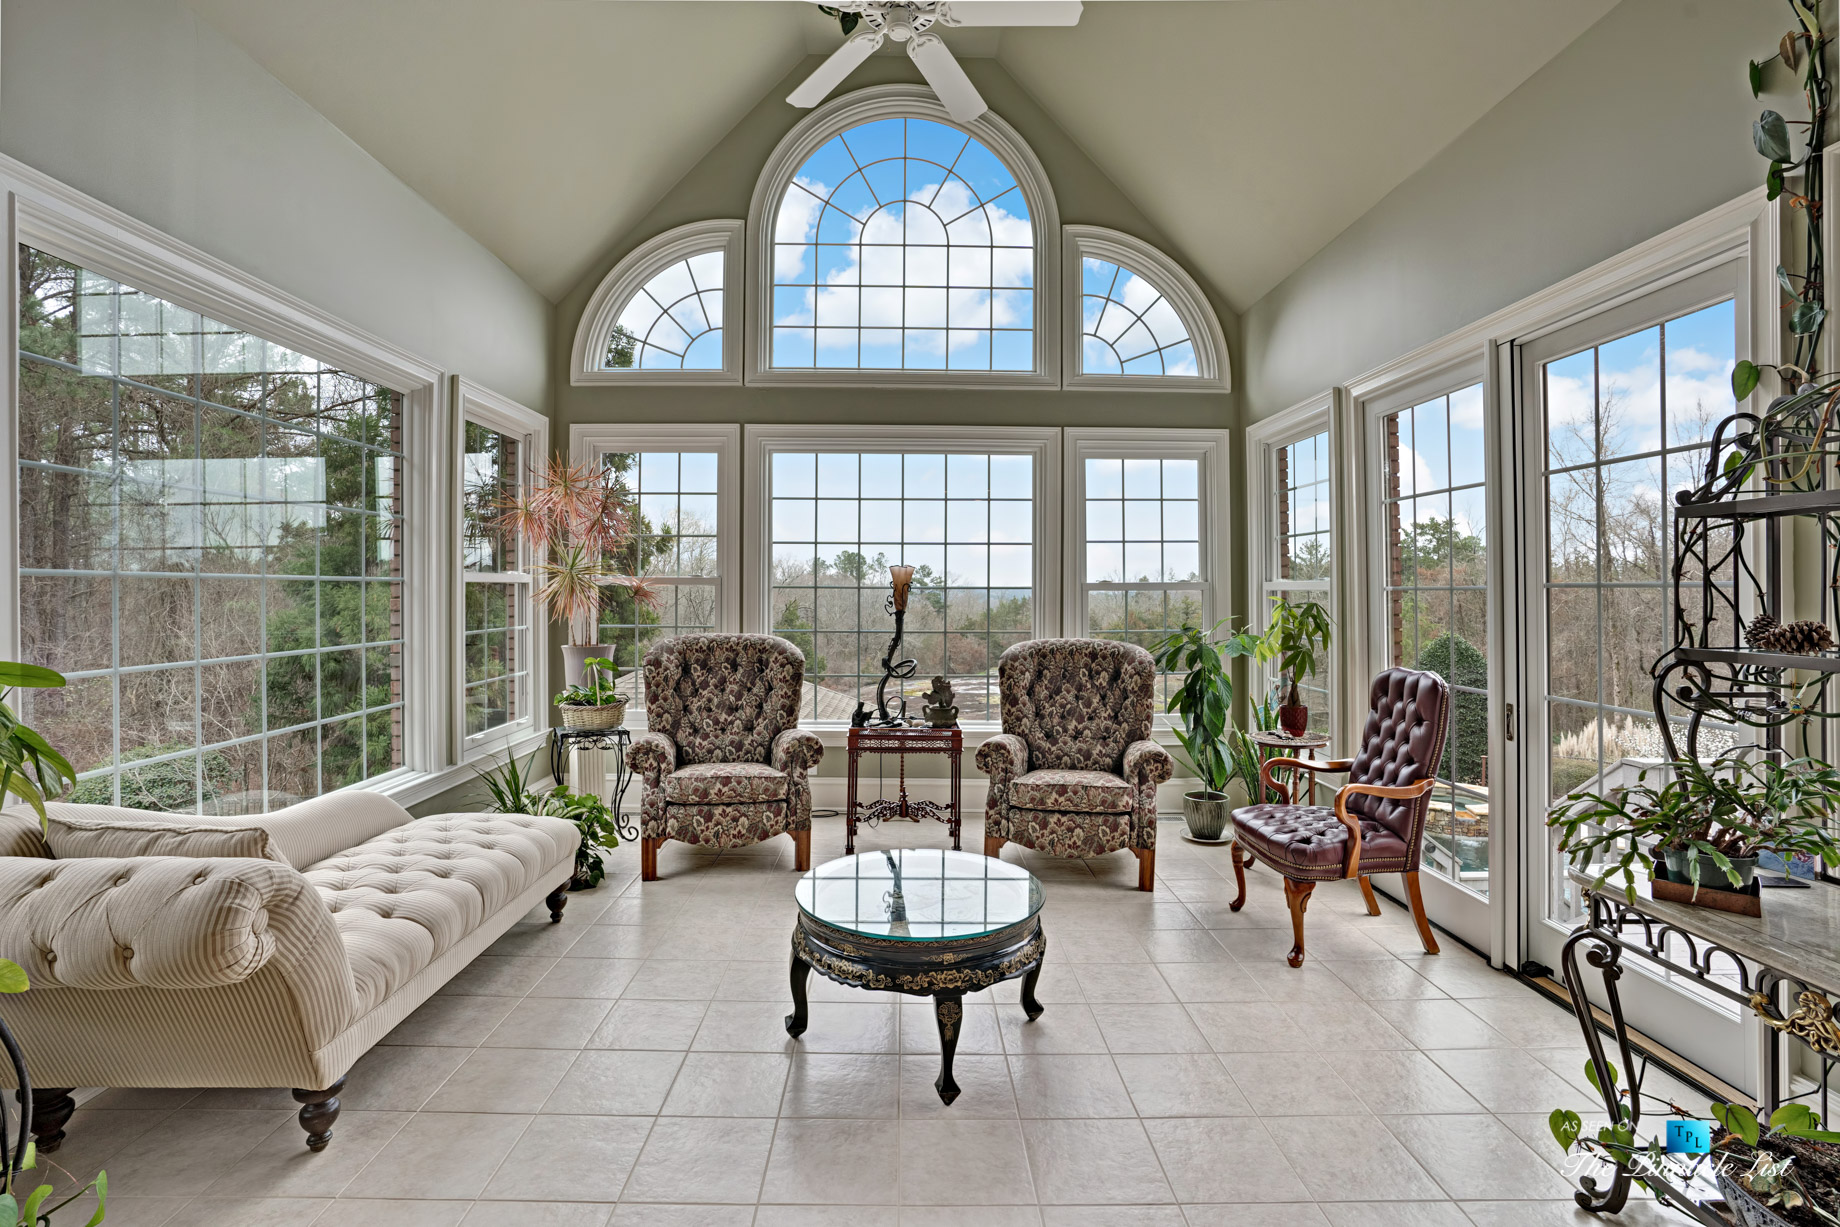 2219 Costley Mill Rd NE, Conyers, GA, USA – Sun Room – Luxury Real Estate – Equestrian Country Home